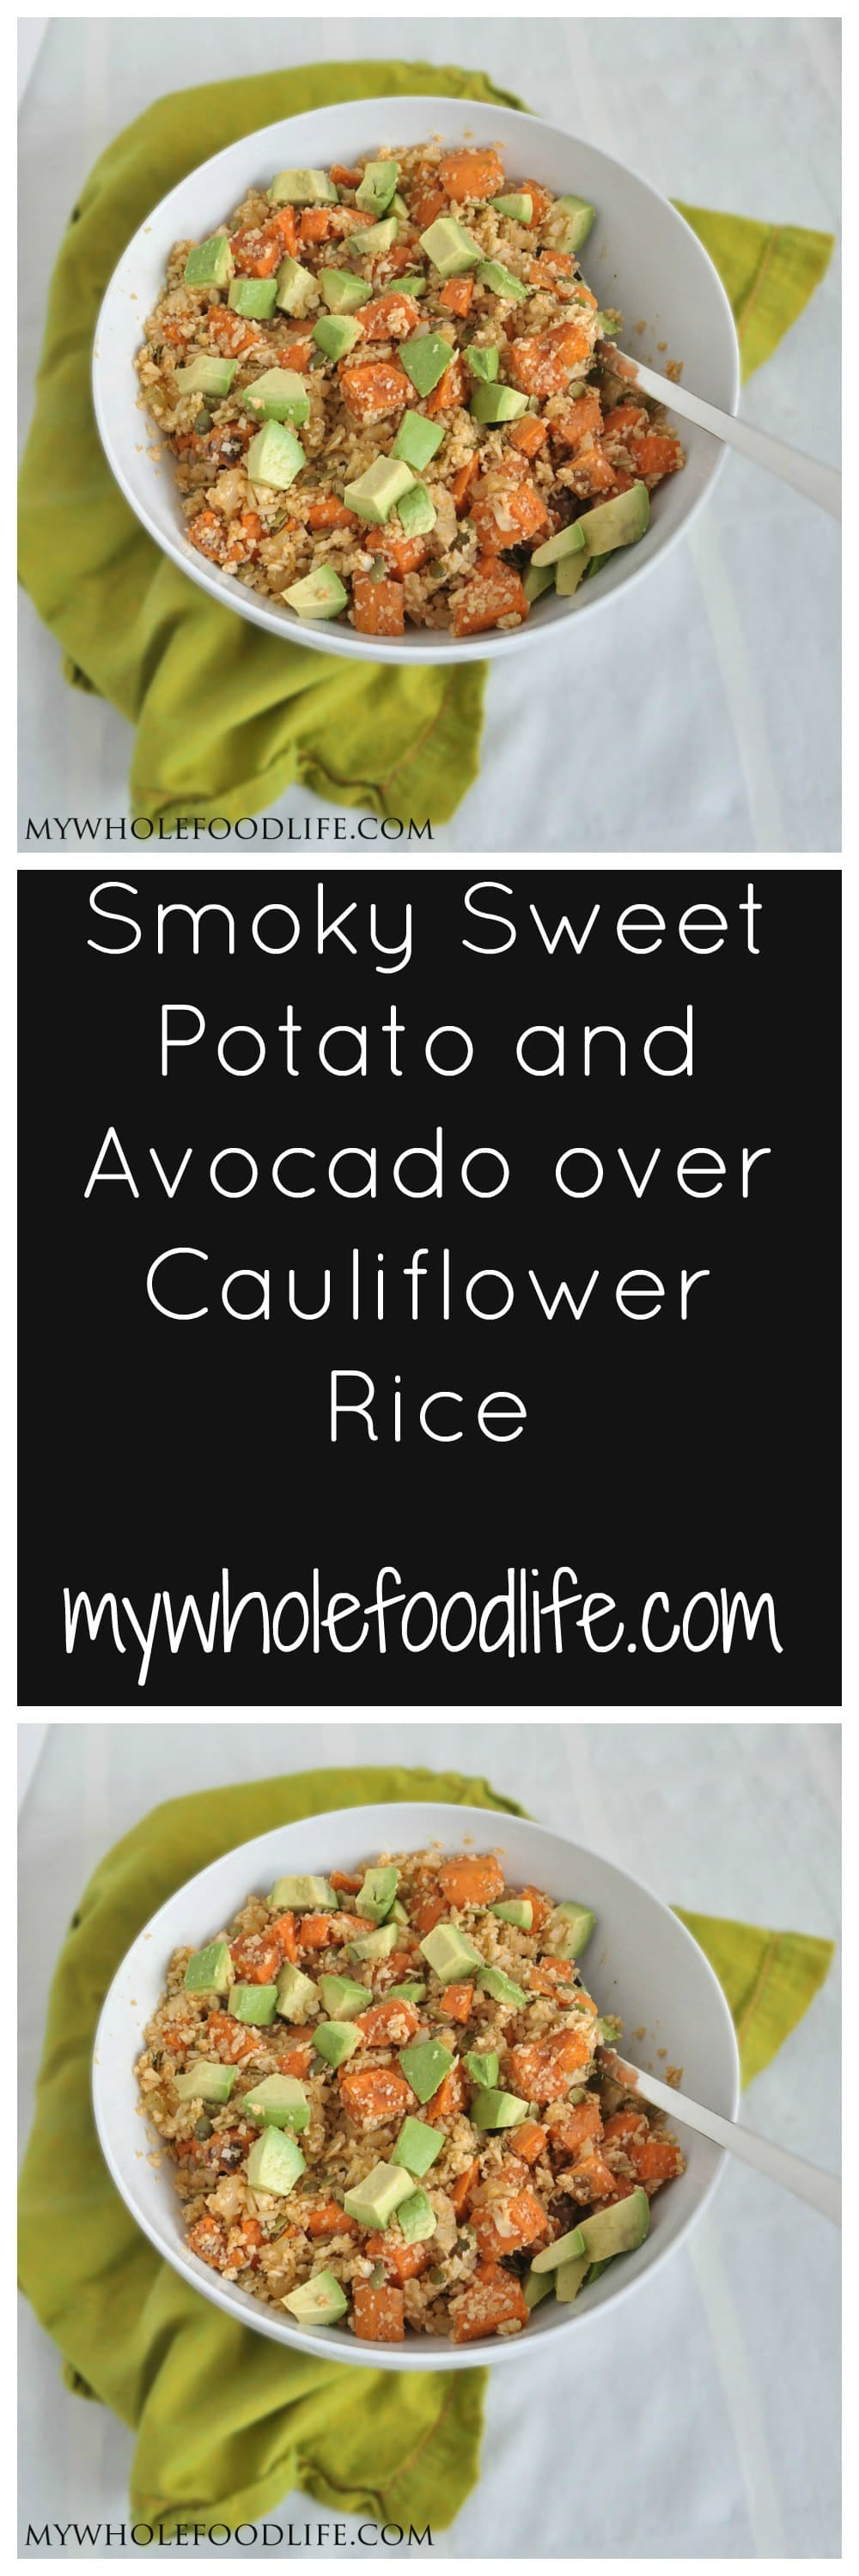 Avocado, Sweet Potato and Cauliflower Rice P